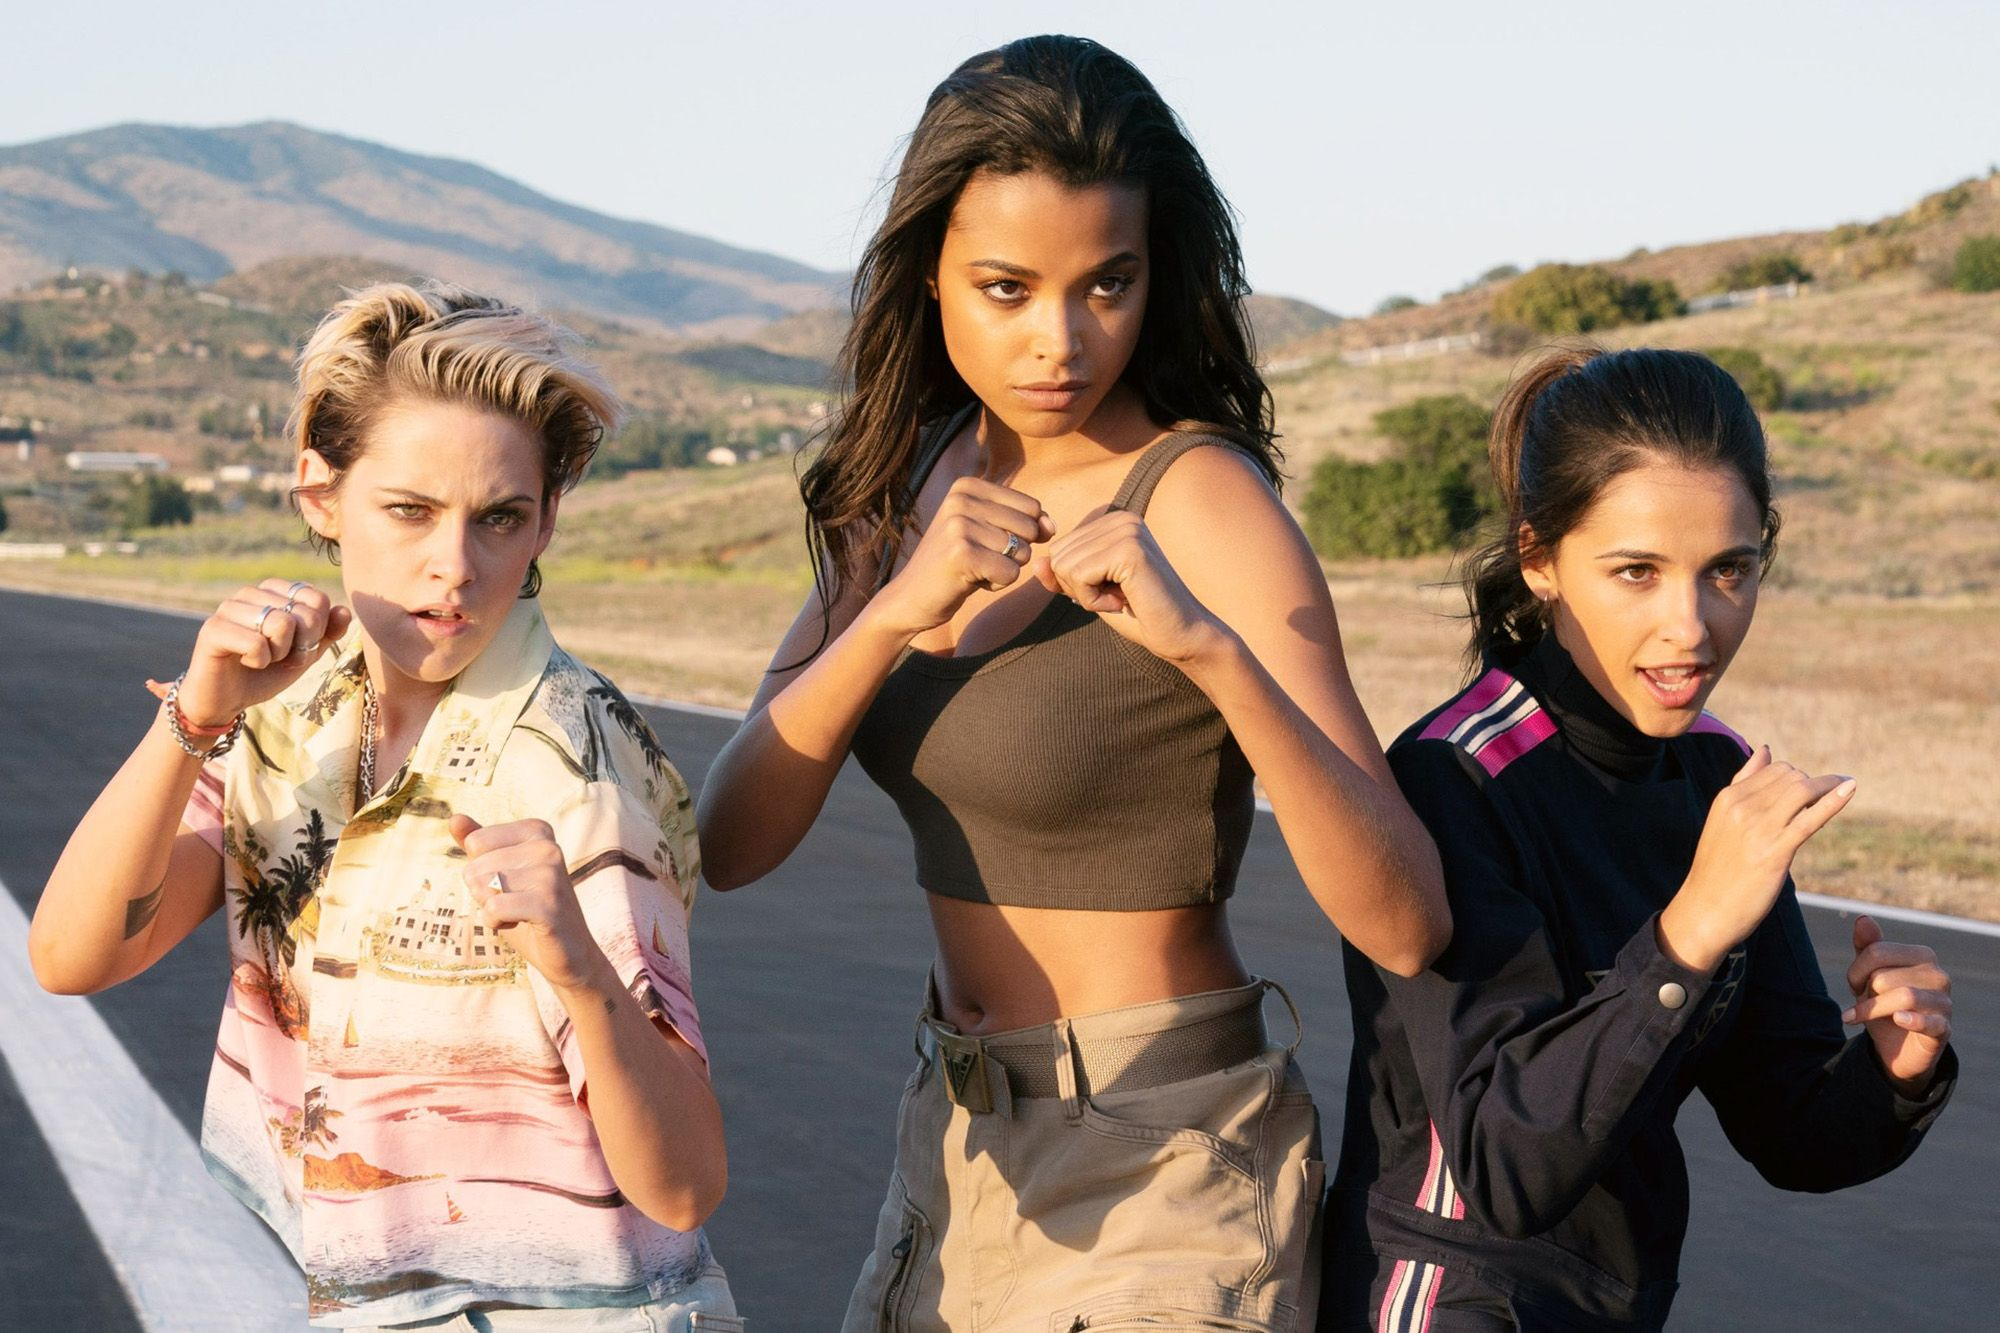 Netflix films with strong female leads: Charlie's Angels